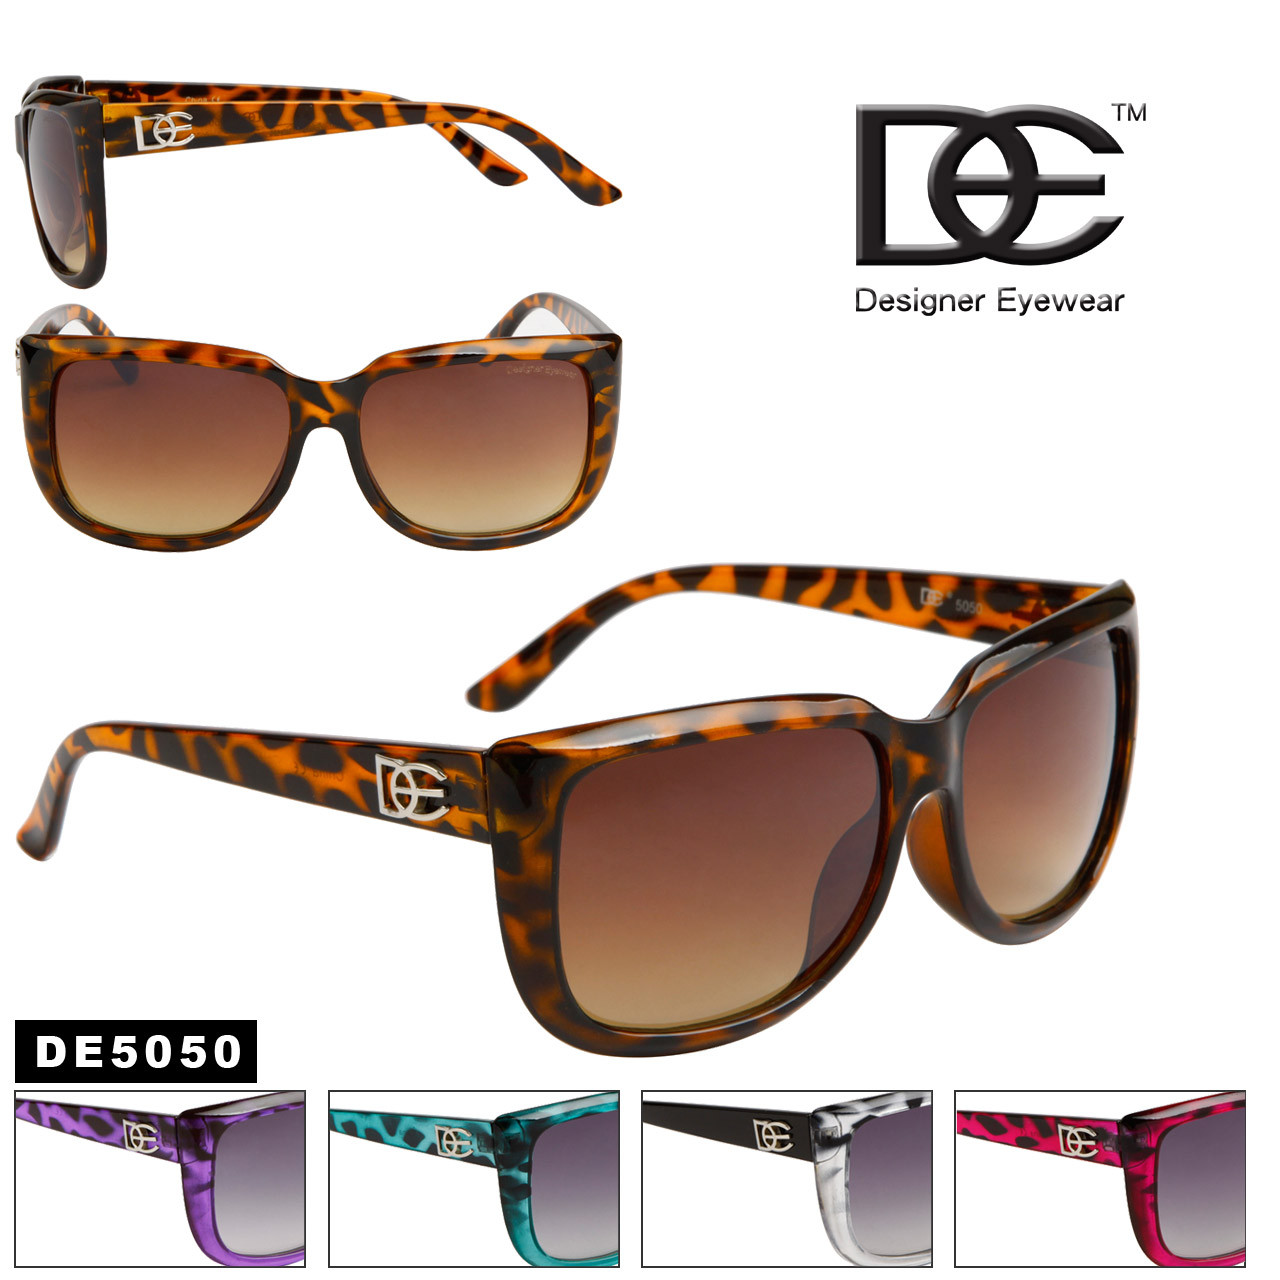 DE™ Wholesale Designer Sunglasses - DE5050 (Assorted Colors) (12 pcs.)